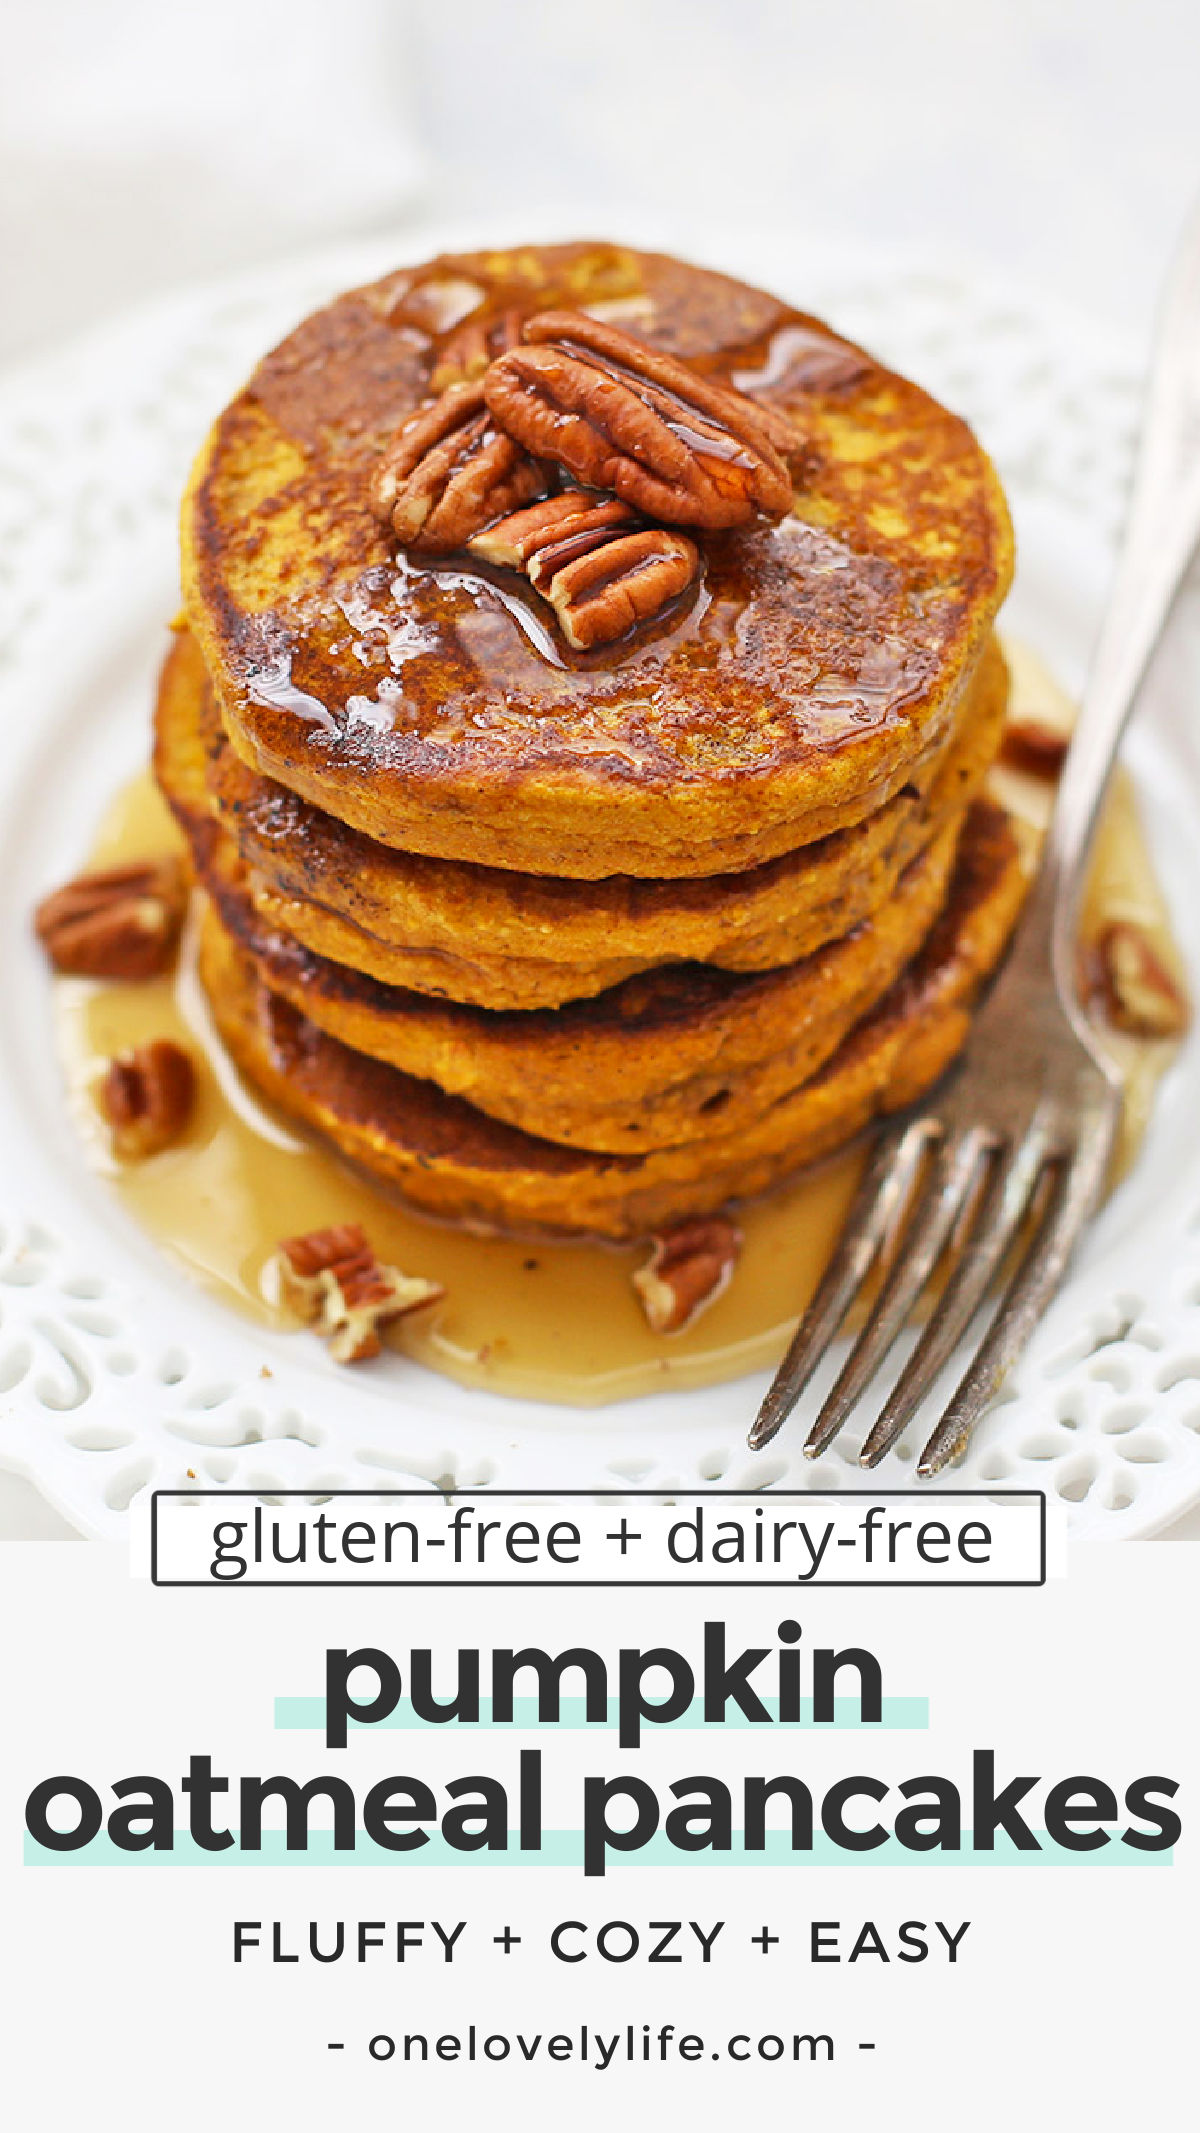 Blender Pumpkin Oatmeal Pancakes - These healthy pumpkin pancakes are gluten & dairy free. SO EASY, since they're made in the blender! It's the BEST pumpkin pancakes recipe! // blender pancakes // pumpkin pancakes // pumpkin oatmeal pancakes // gluten free pumpkin pancakes #glutenfree #dairyfree #pancakes #pumpkin #blenderpancakes #pumpkinpancakes #oatmealpancakes